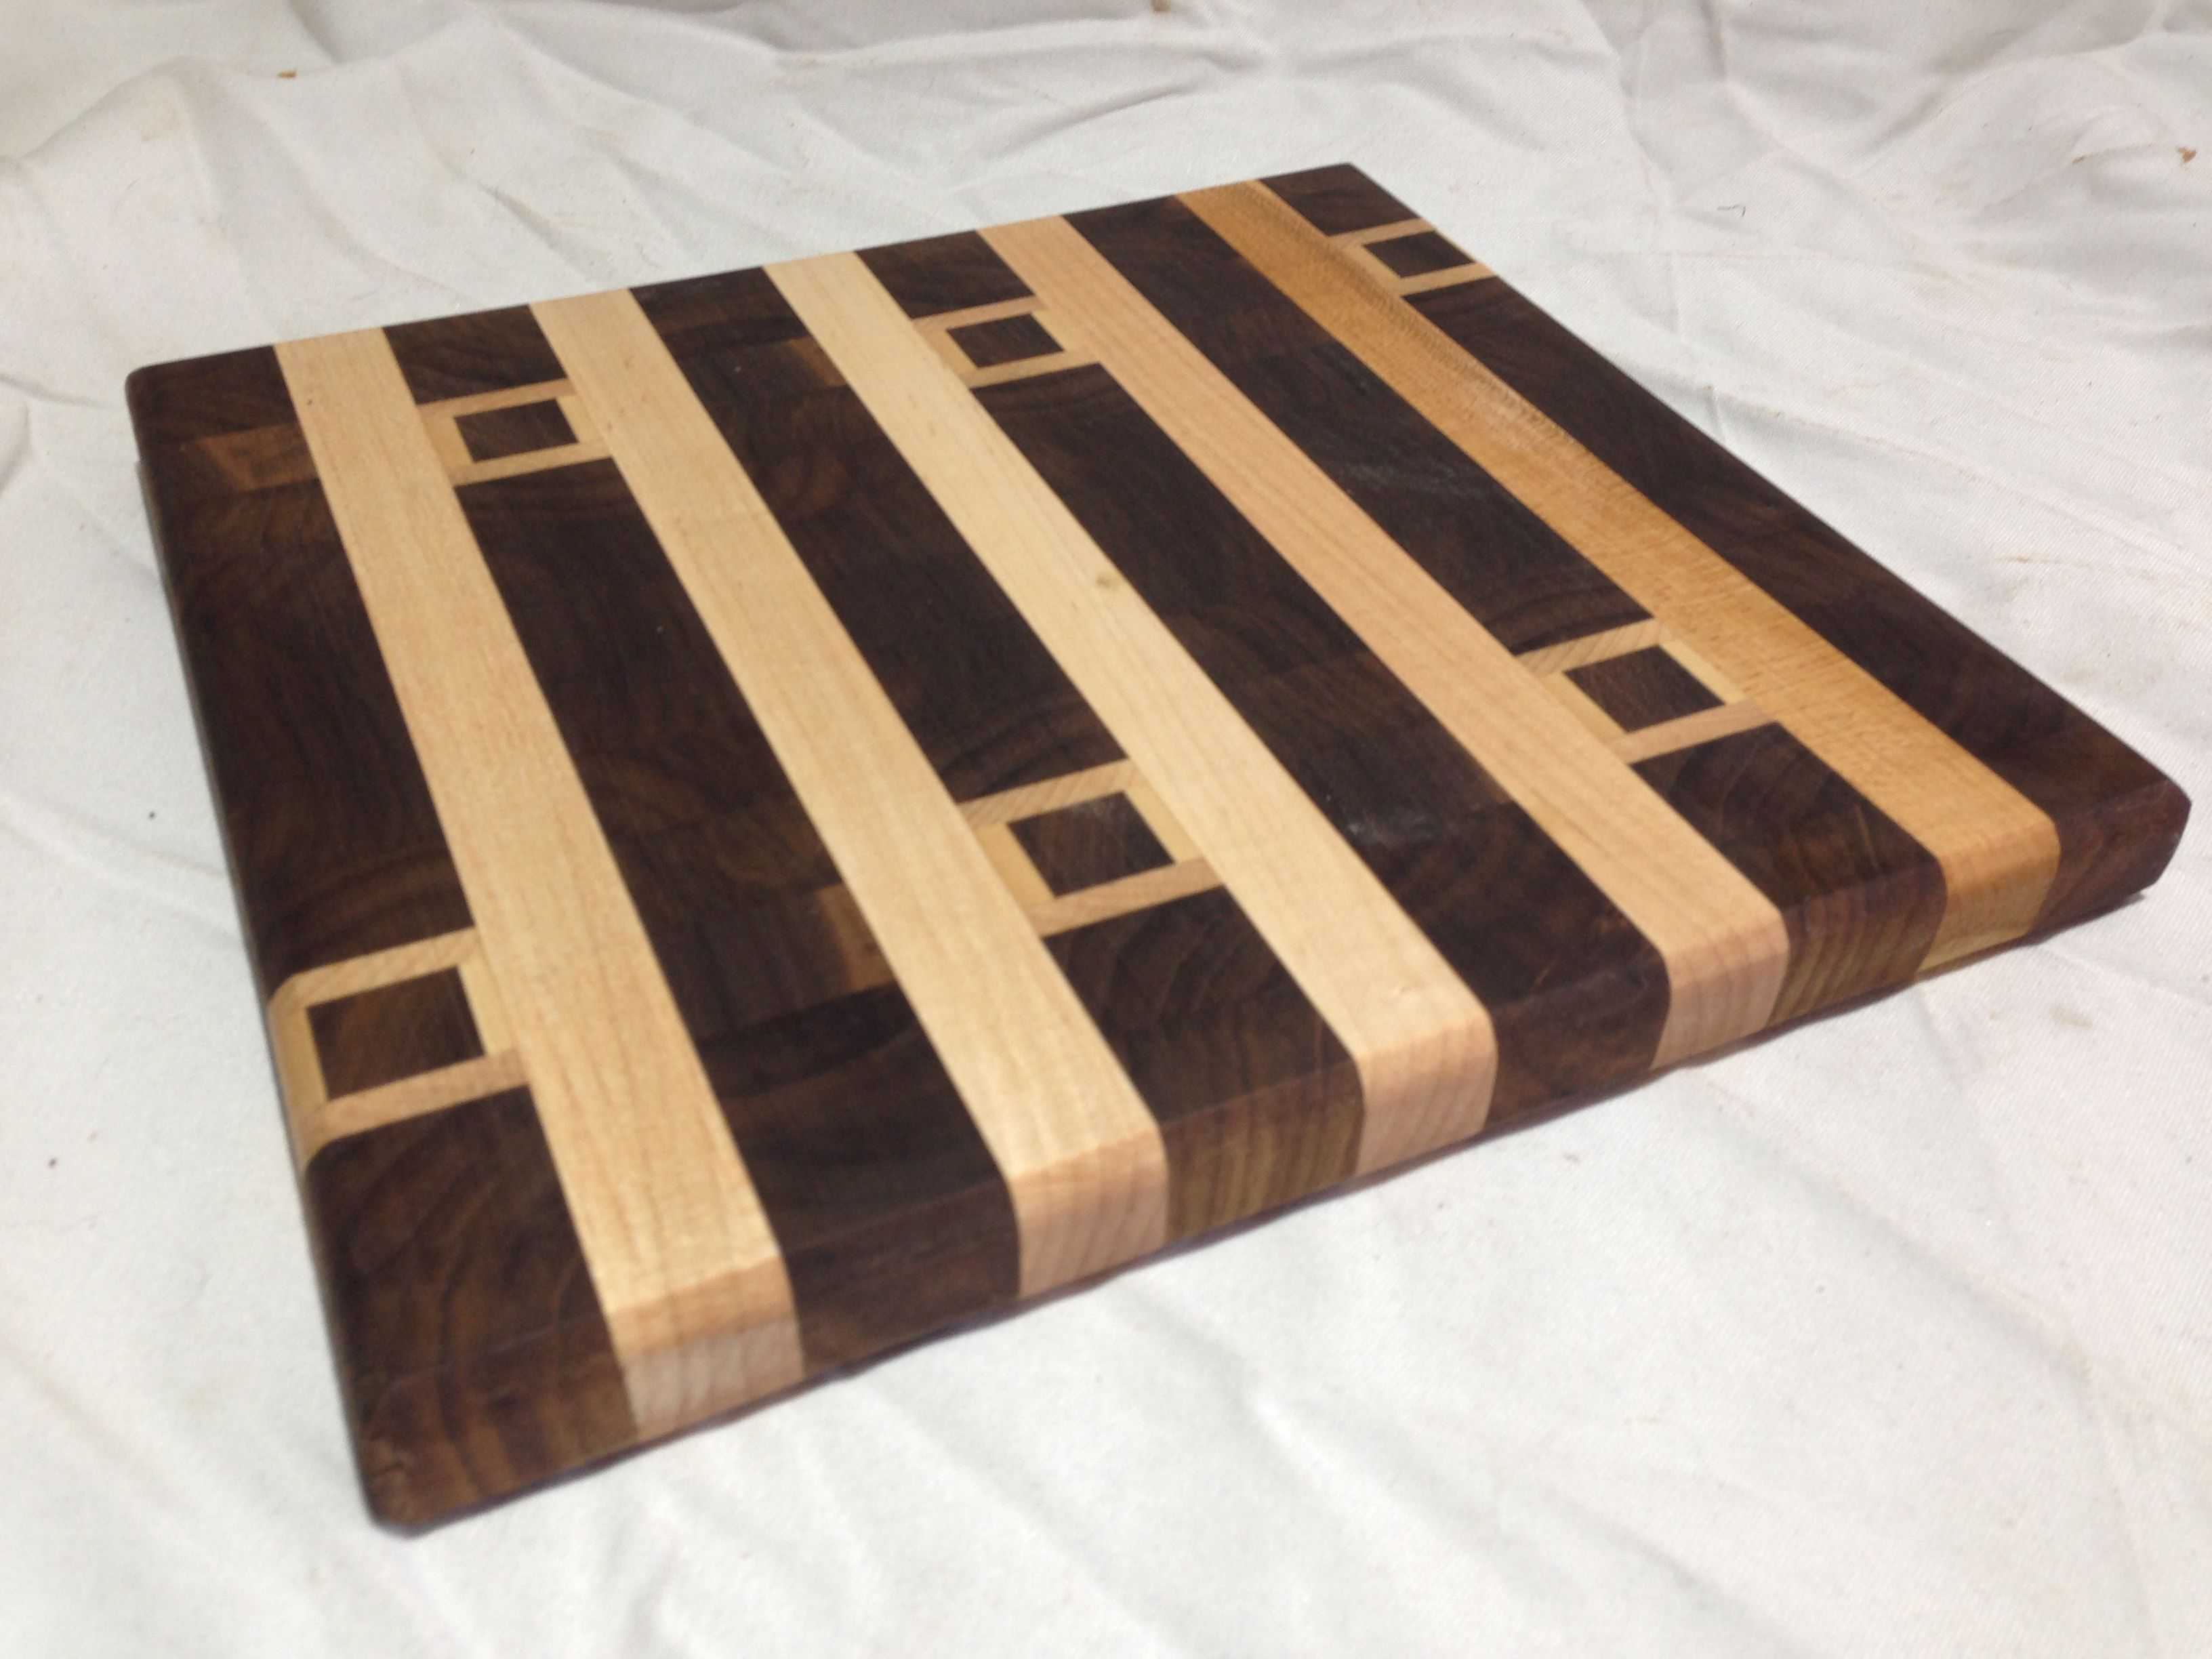 Cool Cutting Board Designs What A Unique Design For A Cutting Board Black Walnut And